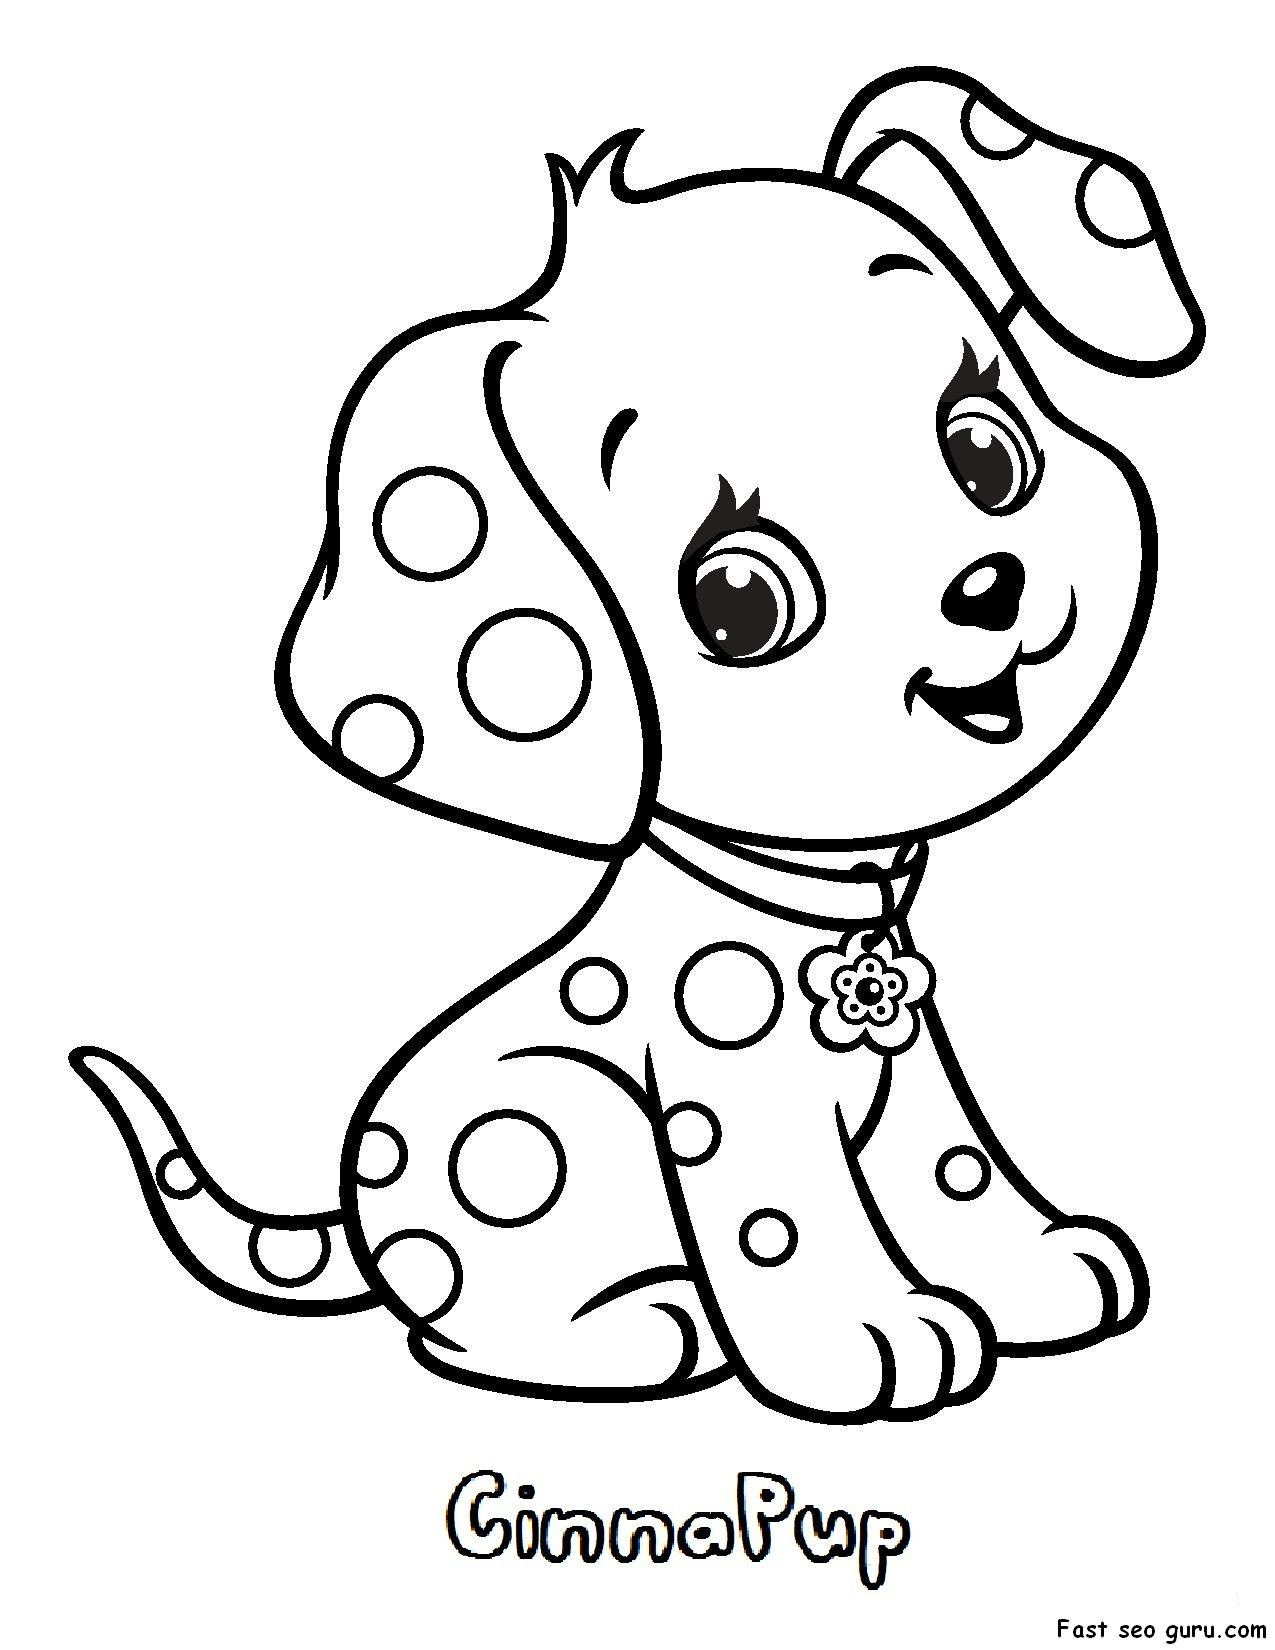 Love Strawberry Shortcake Pets Coloring Pages | Kwilt